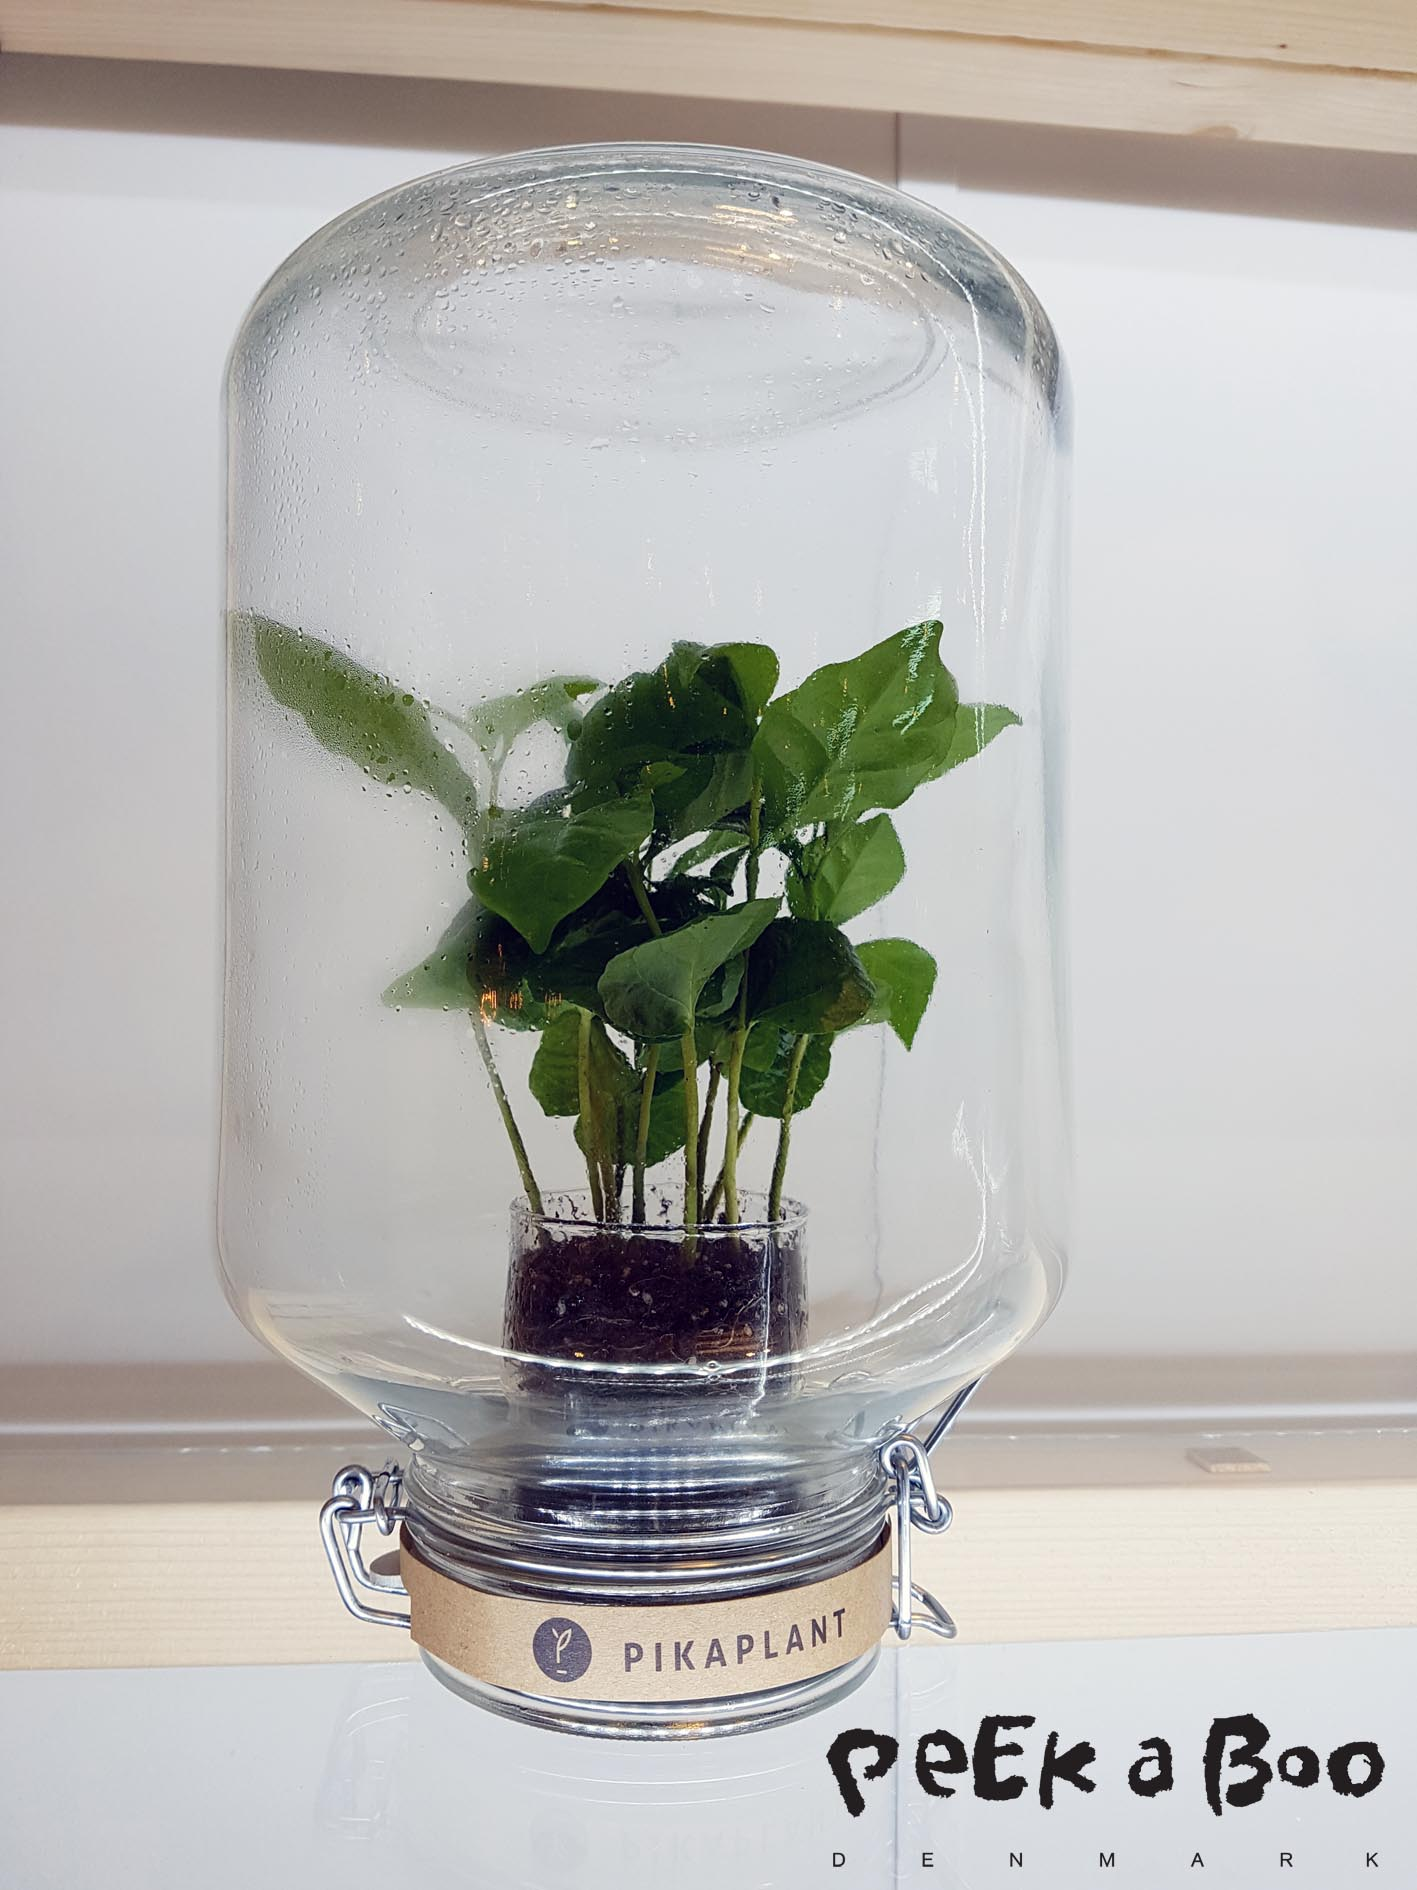 Pikaplants from Amsterdam. Coffee plants in a jar.